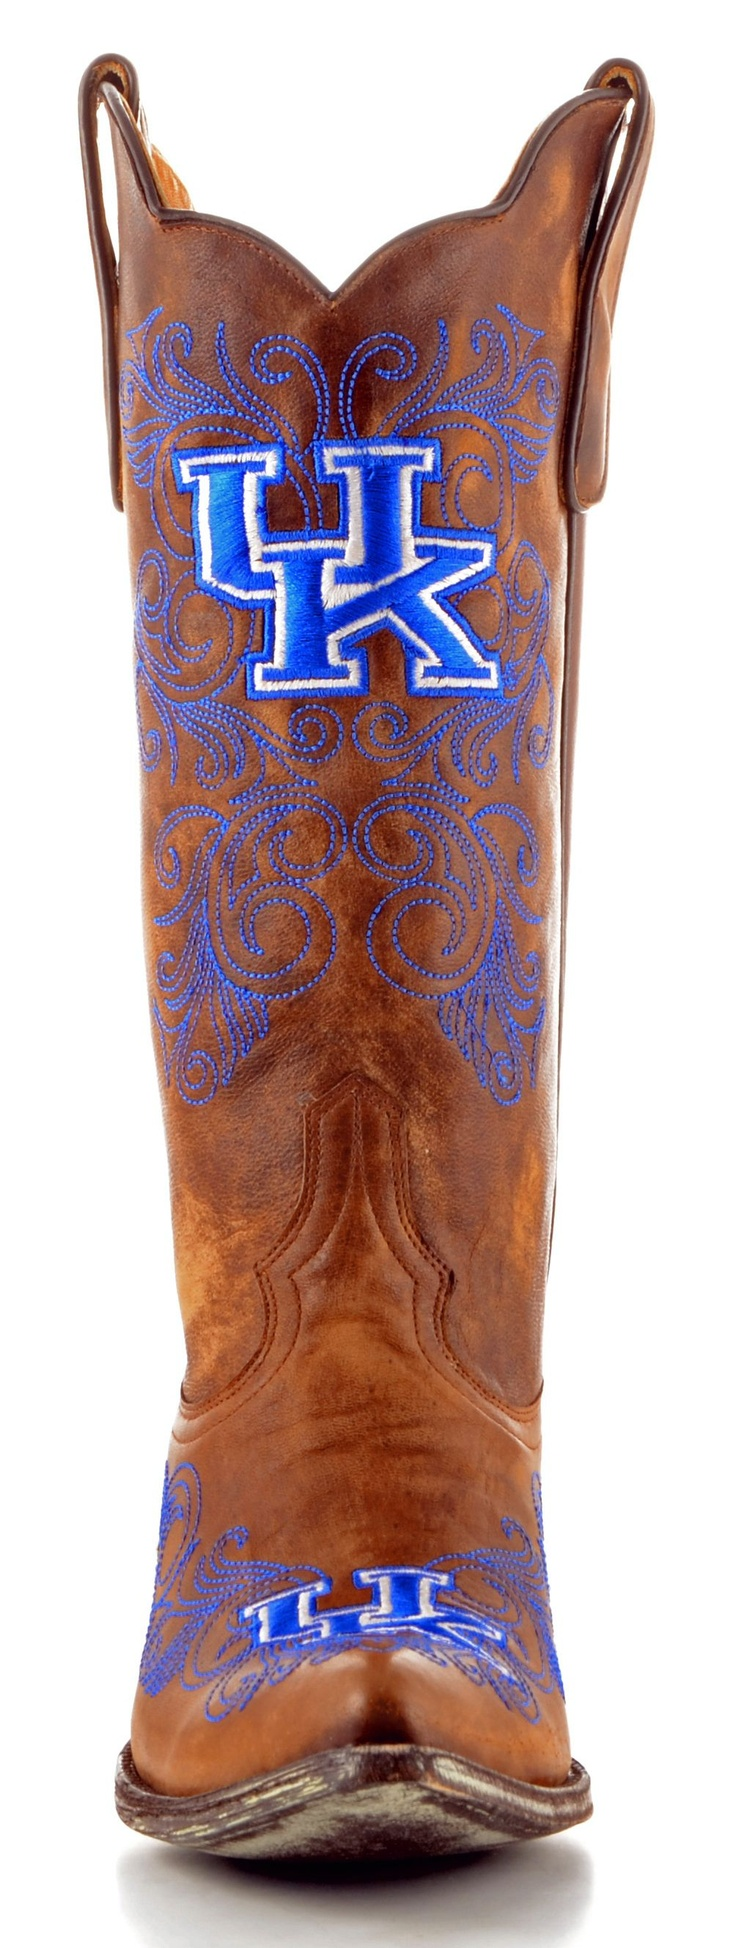 Womens University of Kentucky Gameday boots... These are awesome!!!! If I do decide to go to UK I will need these!